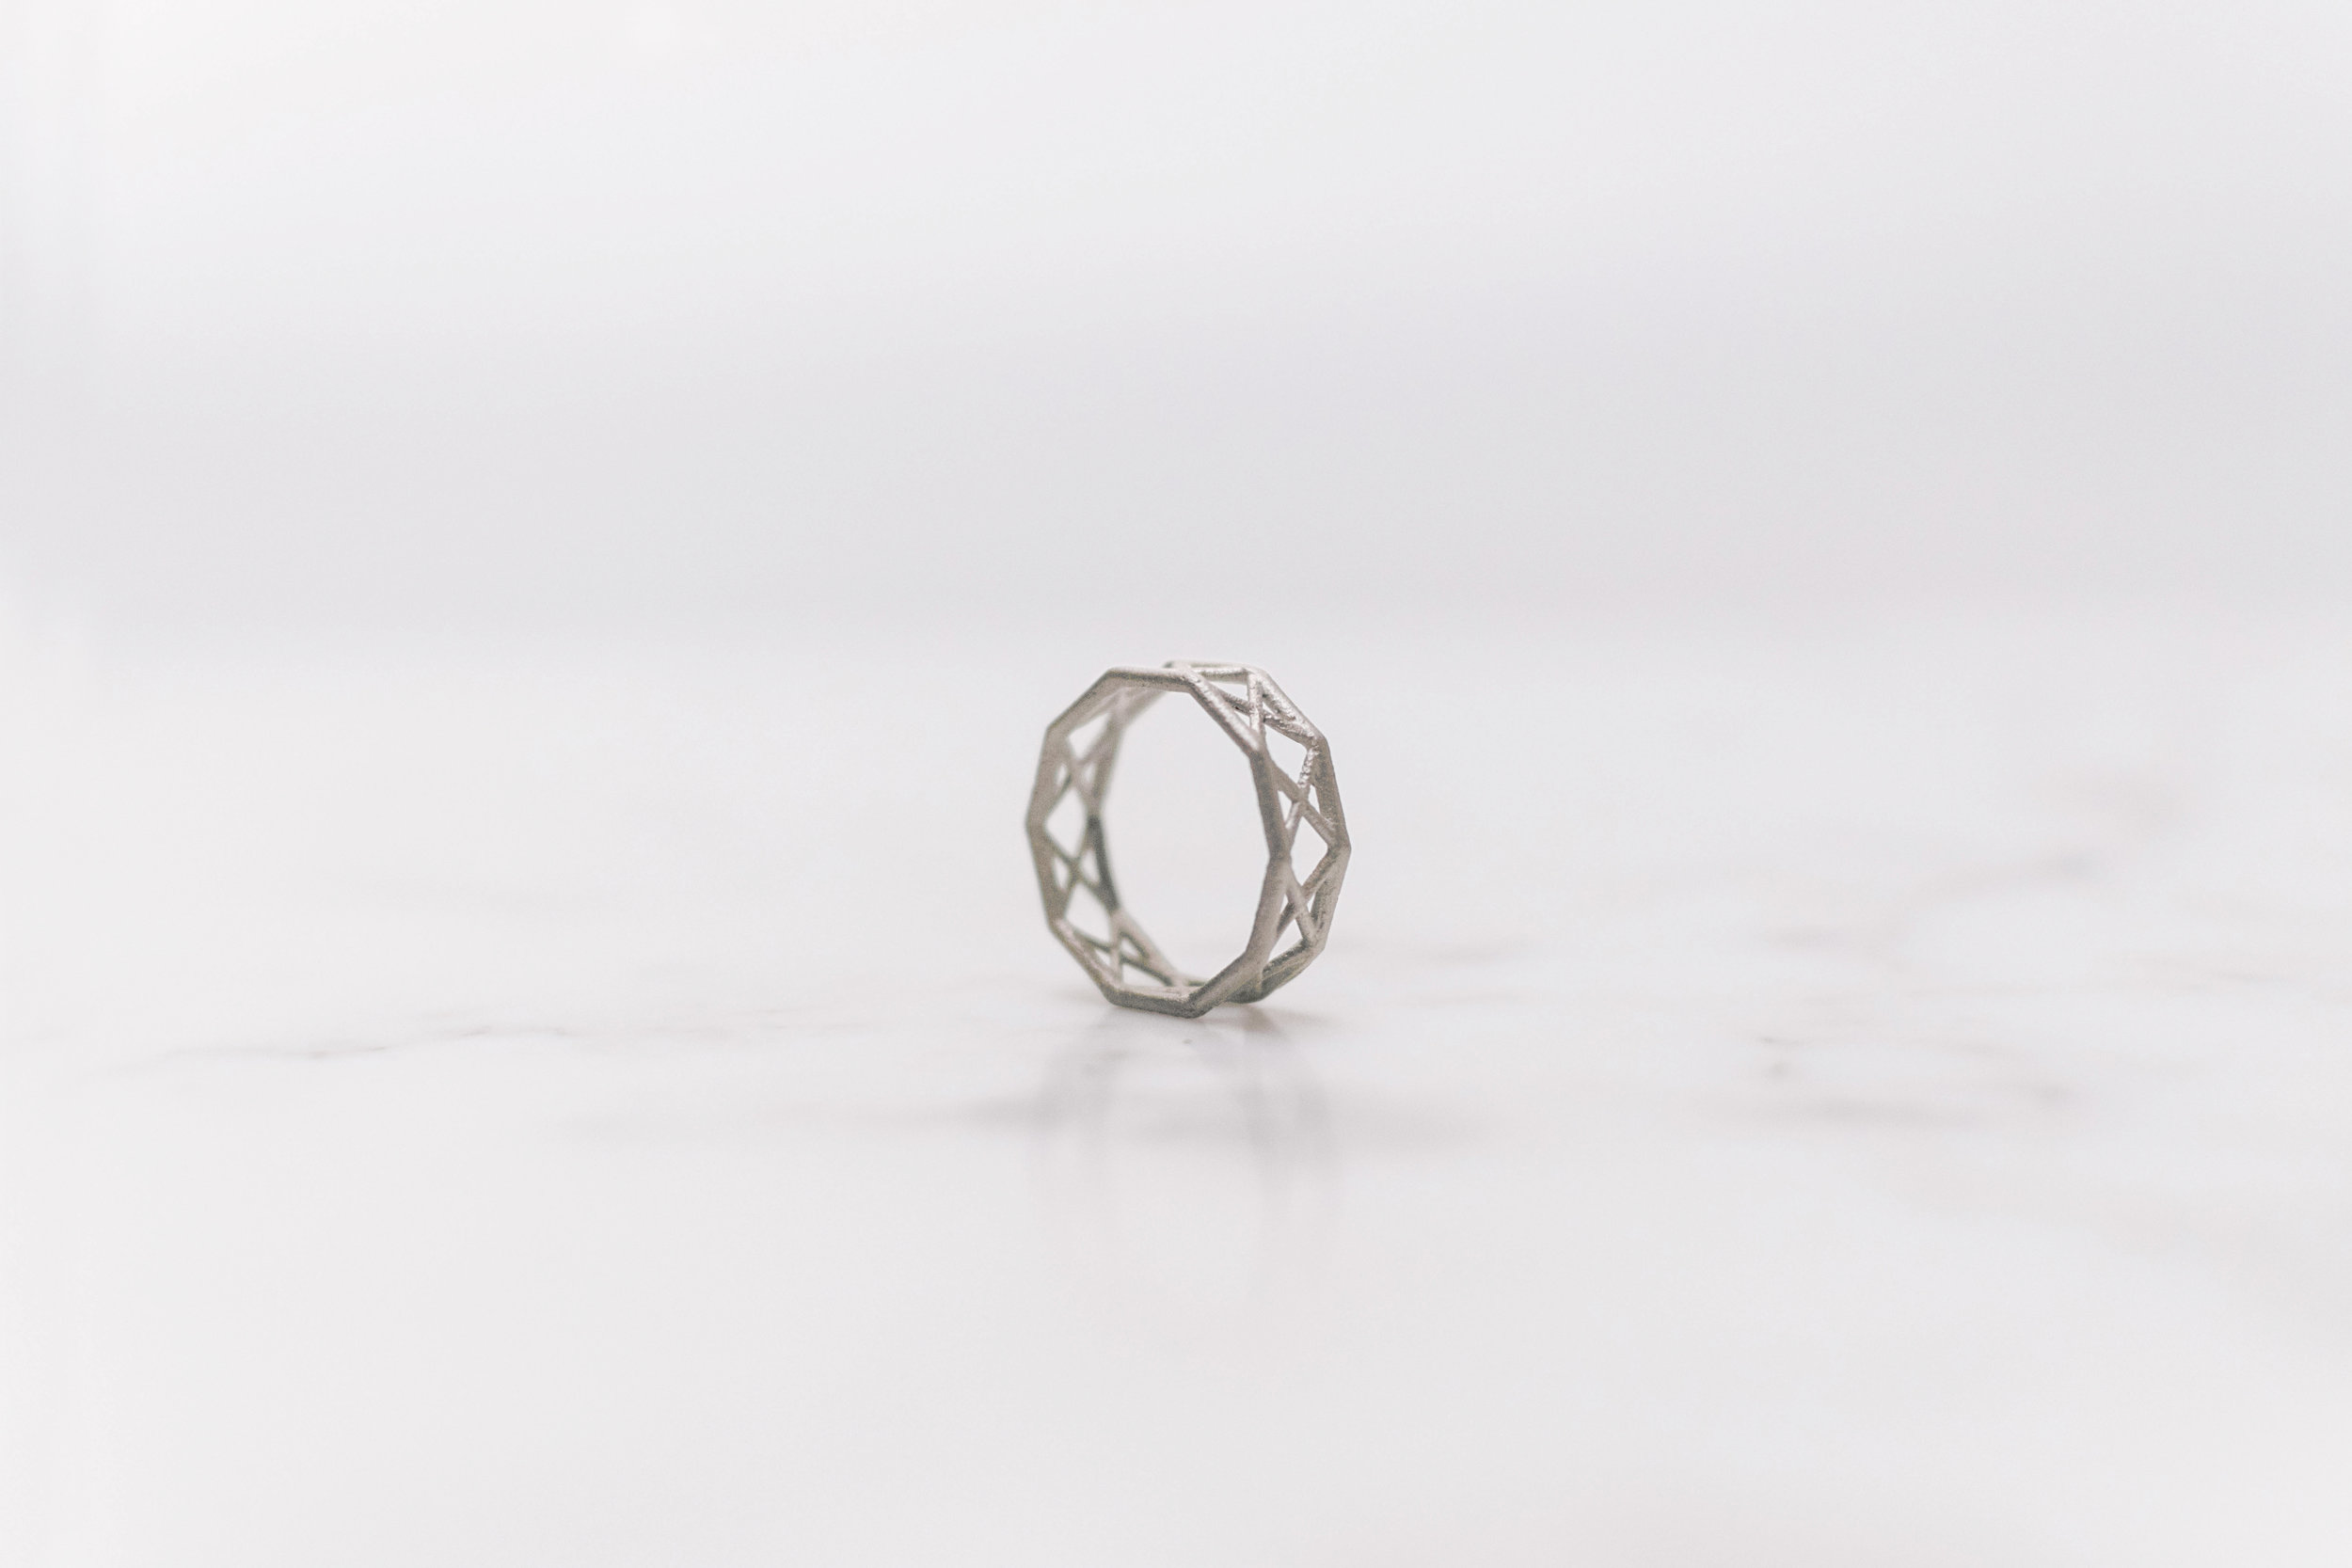 """Warren Warren - .925 Sterling Silver // Without verticals. An uncommon truss configuration, the truss takes the appearance of two Warren truss offset and superimposed on each other, forming a repeating """"X"""" pattern."""